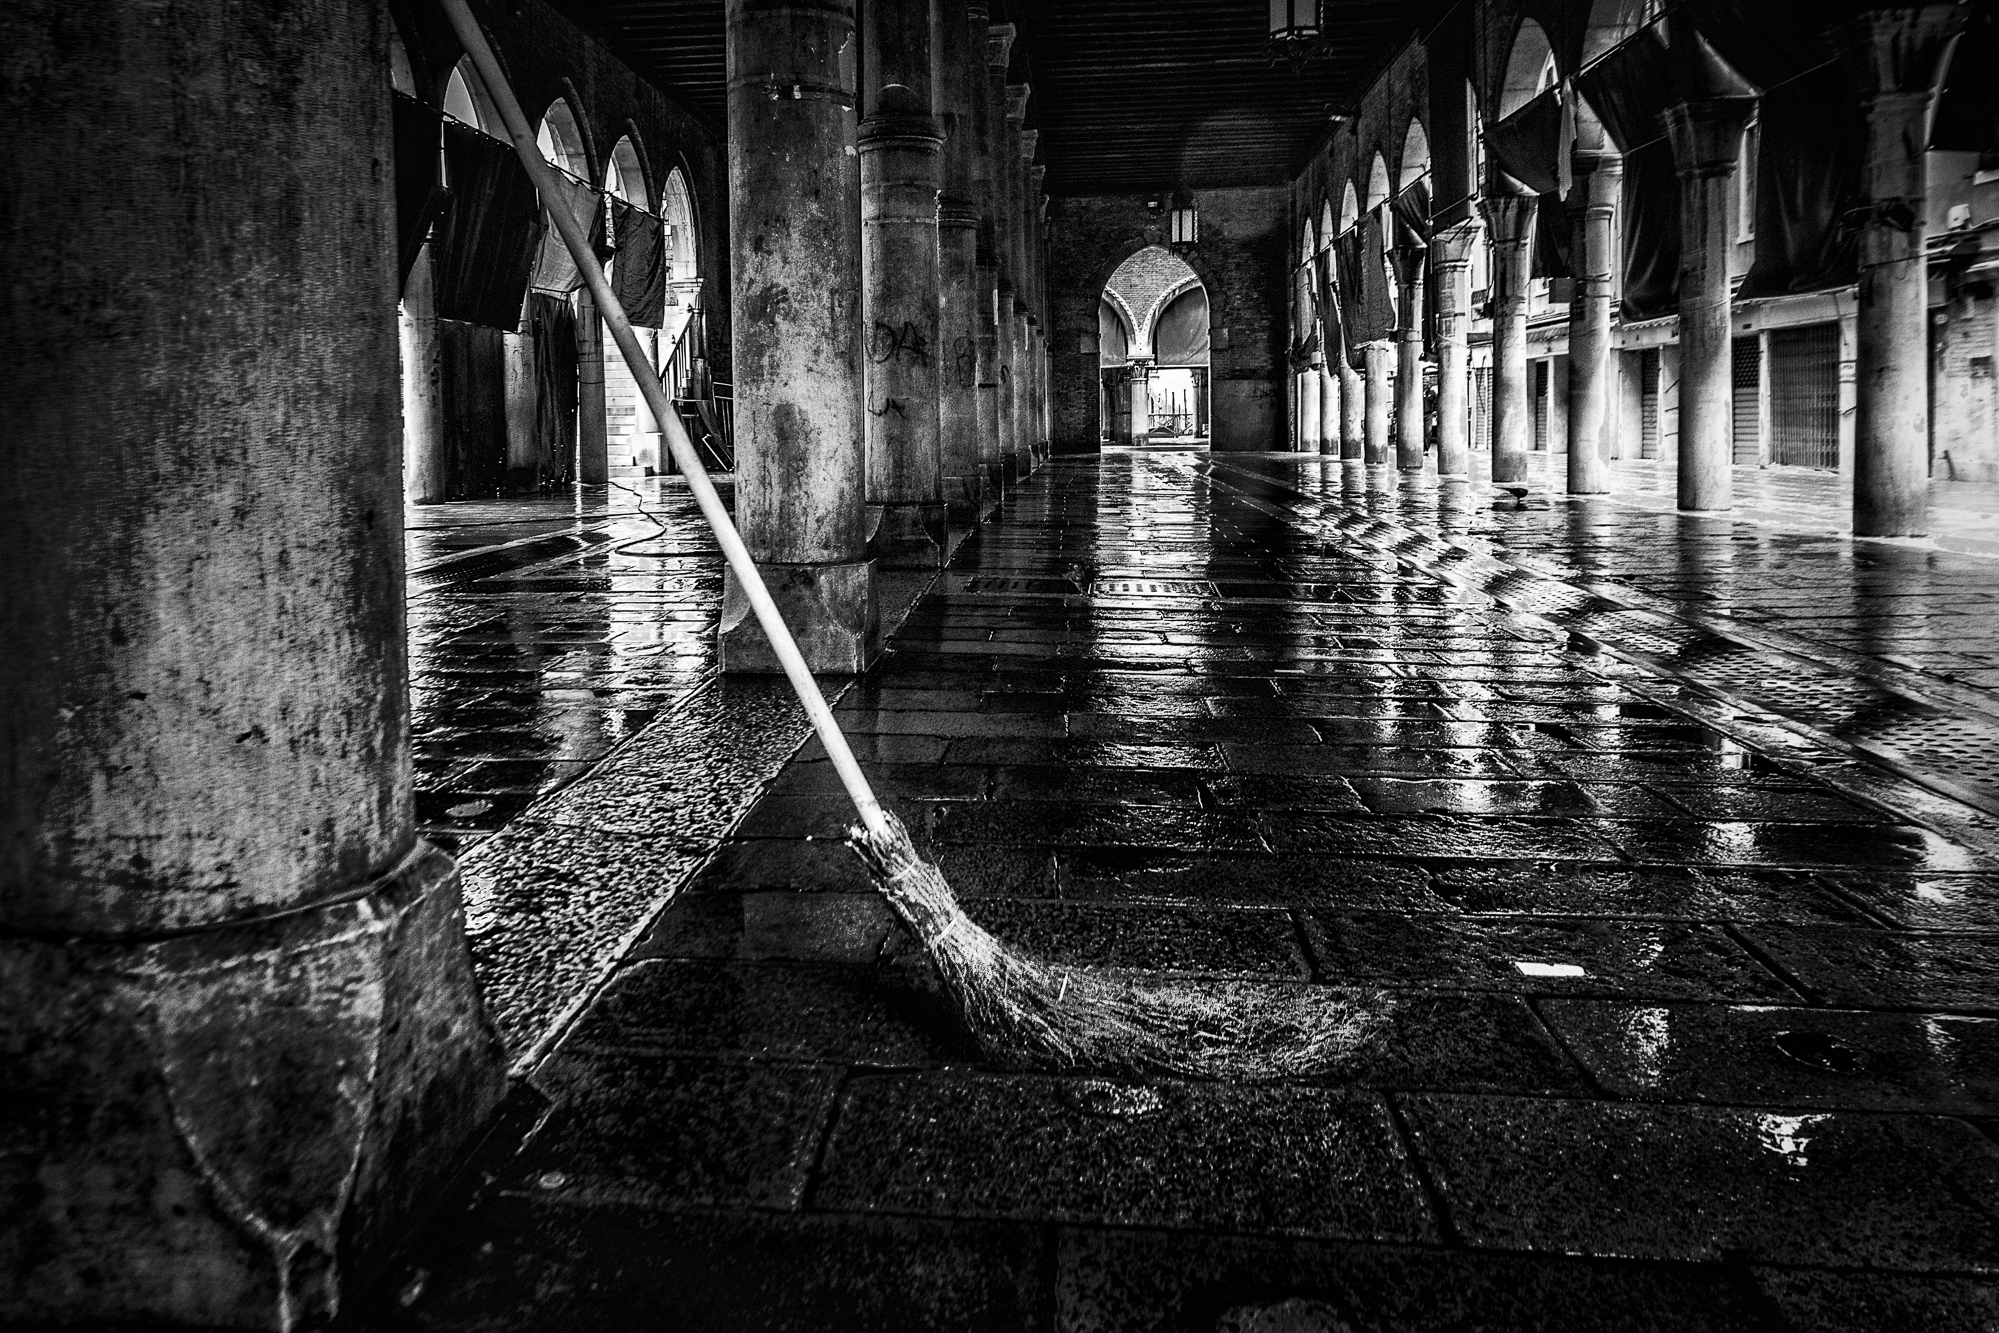 The stick broom is a reality in Venice